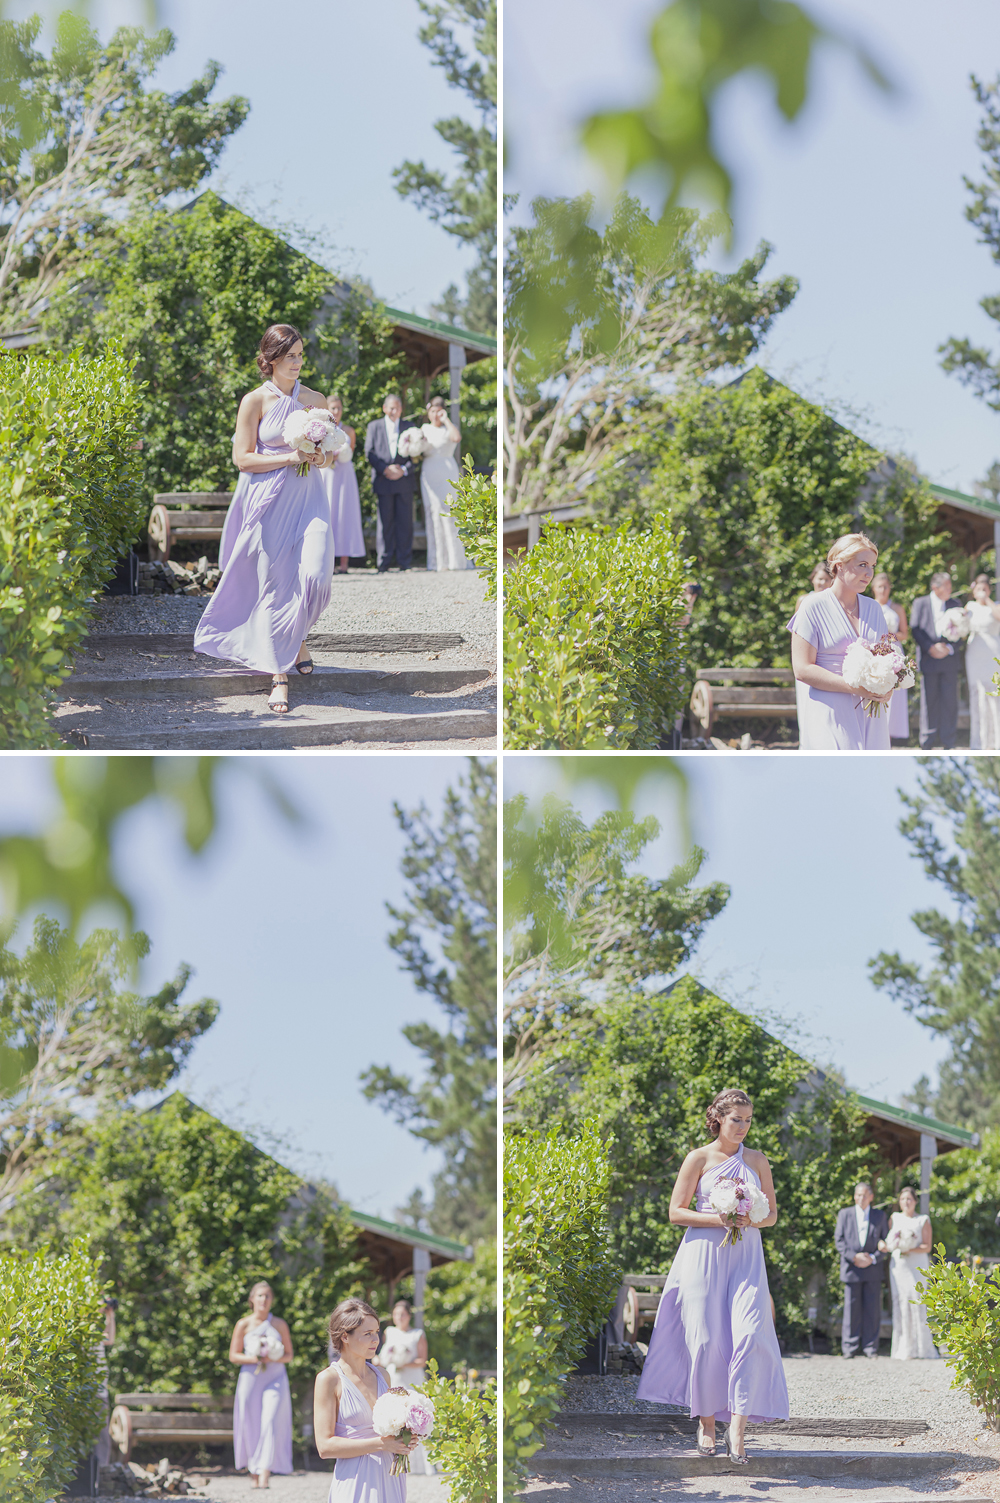 Sudbury wedding photography.